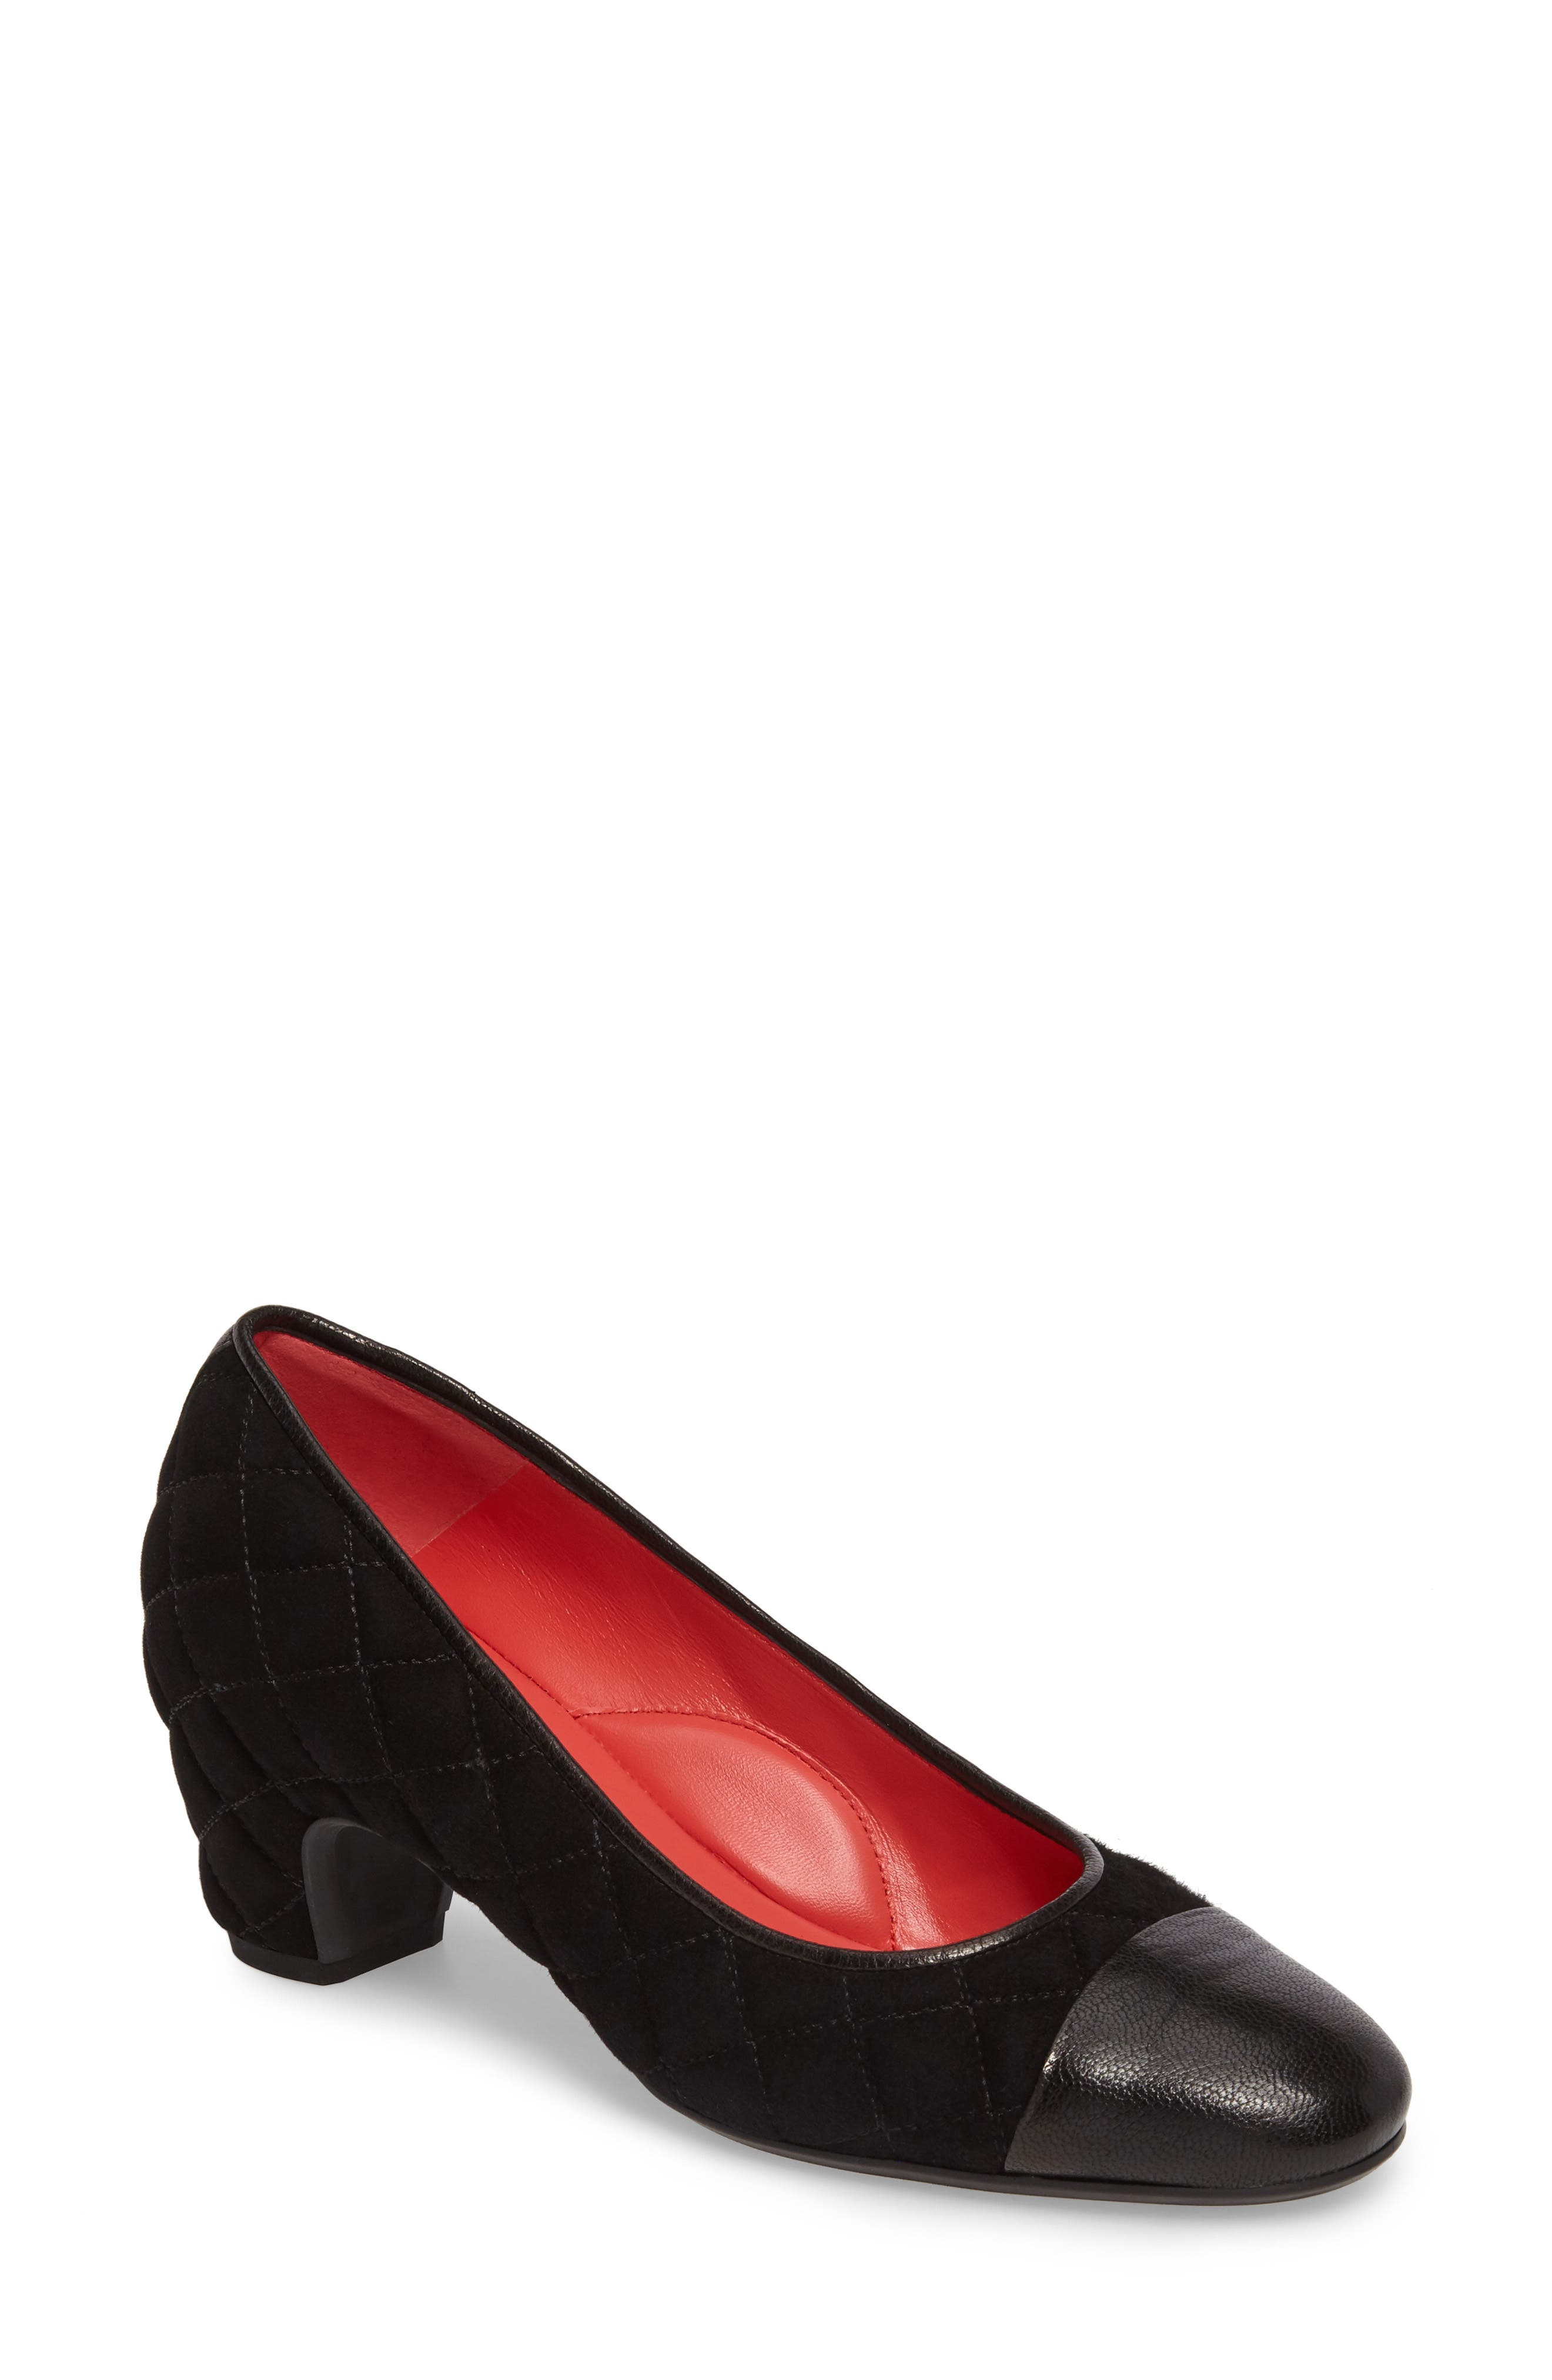 Quilted Cap Toe Pump,                             Main thumbnail 1, color,                             Black Suede/ Black Leather